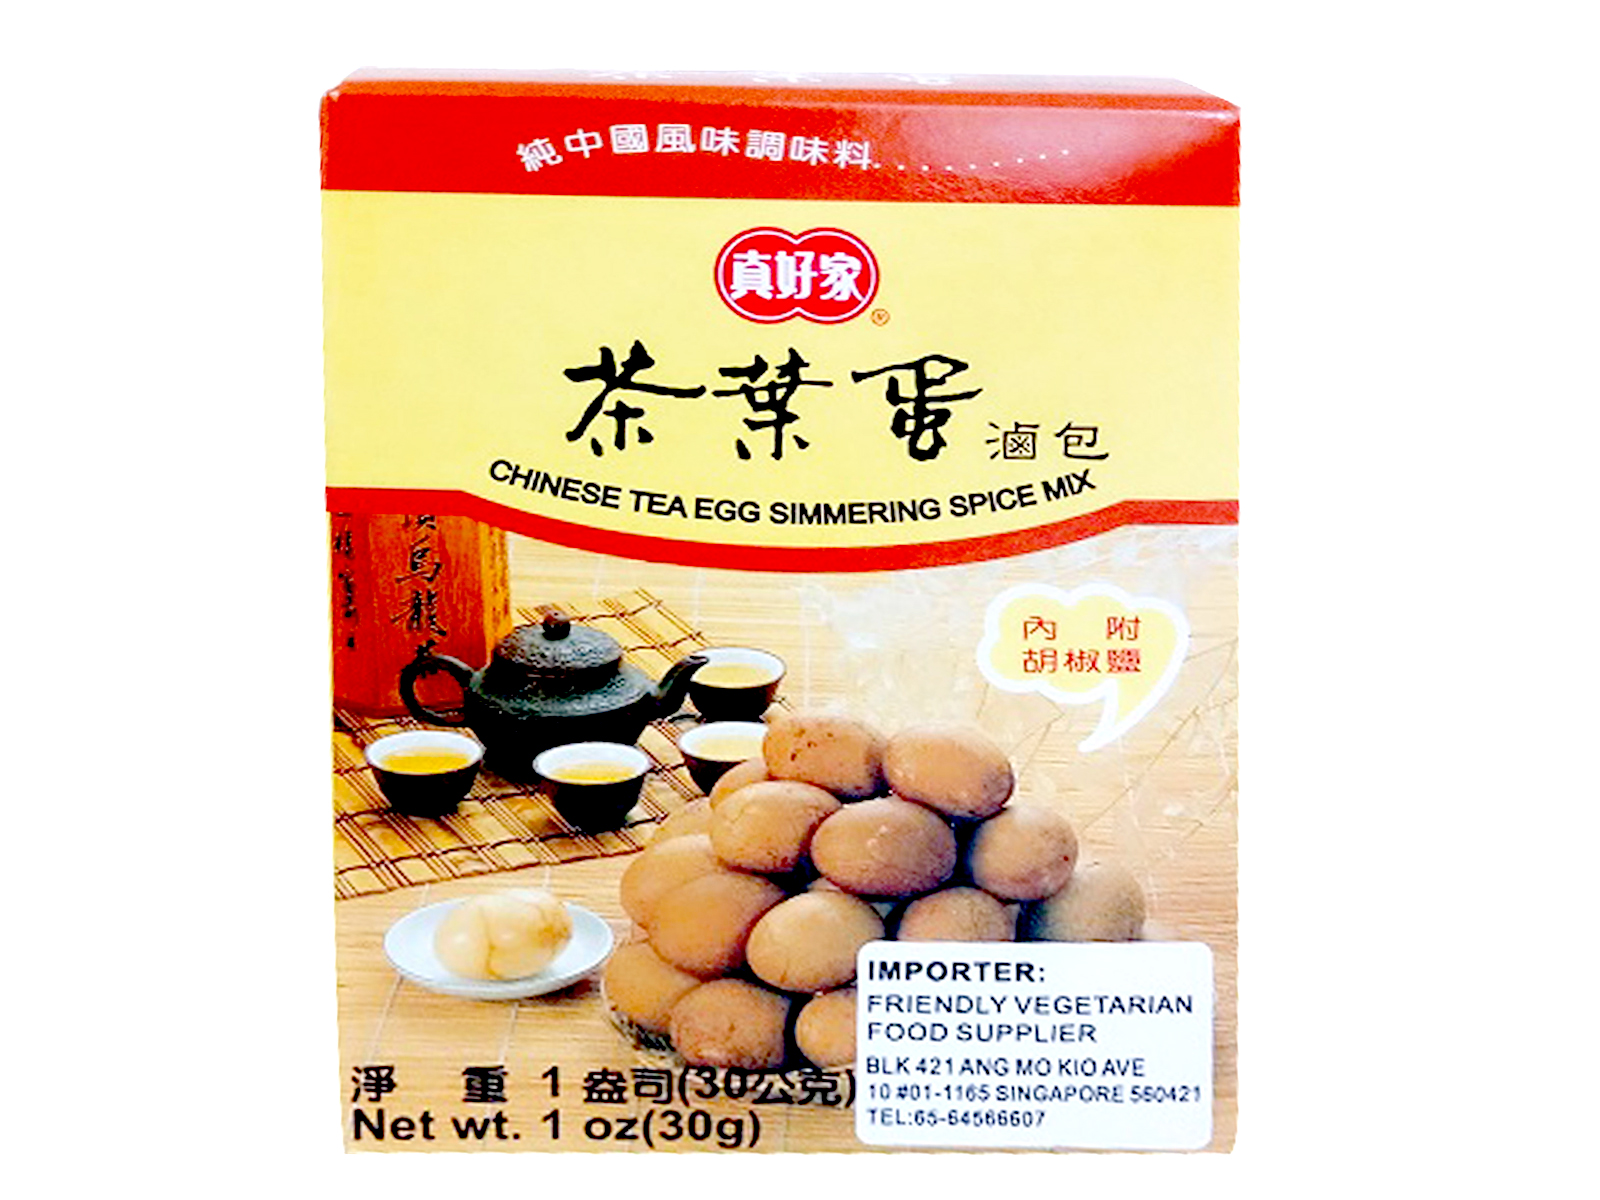 Image Flavoured Tea Egg Spices 真好家 - 茶叶蛋滷包 30g